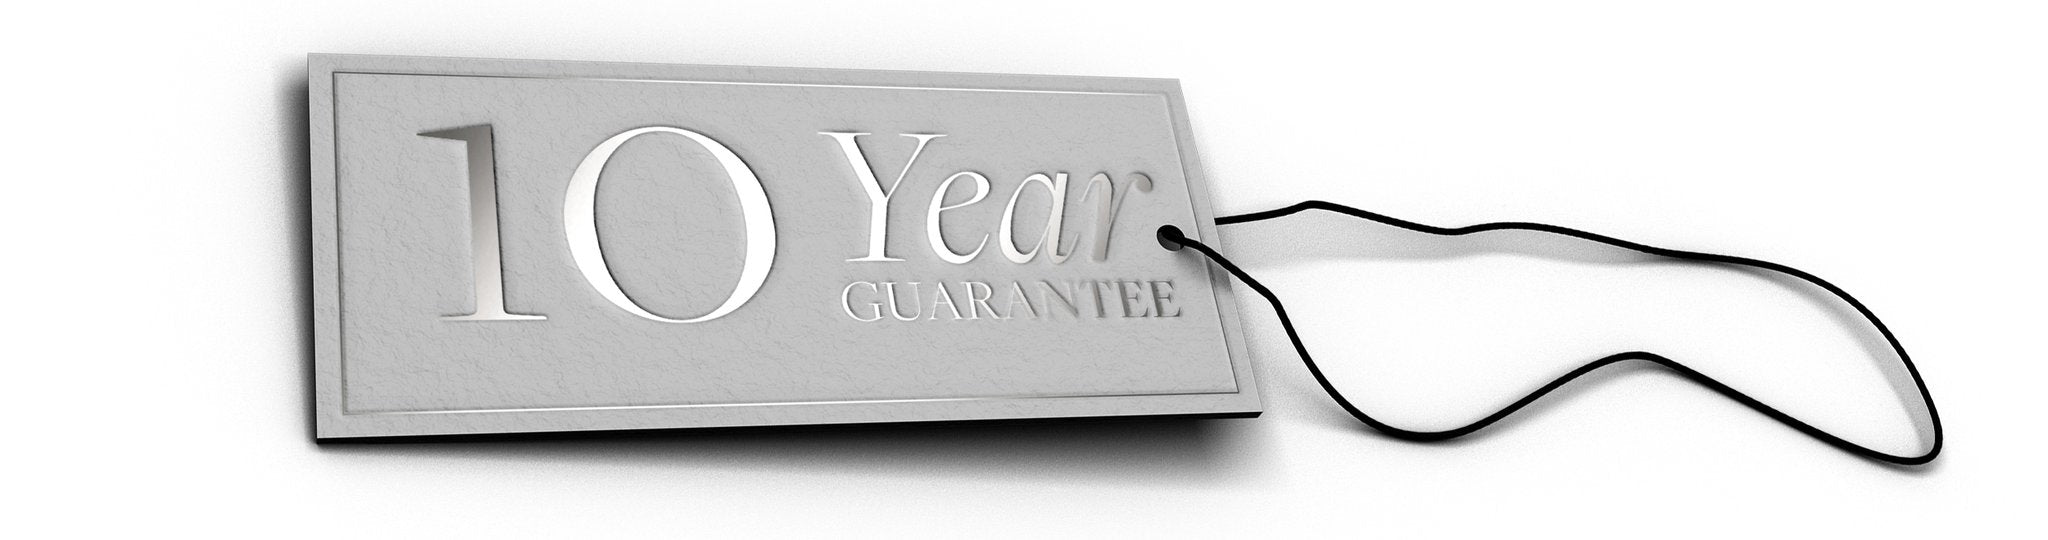 10 Year Guarantee Tag